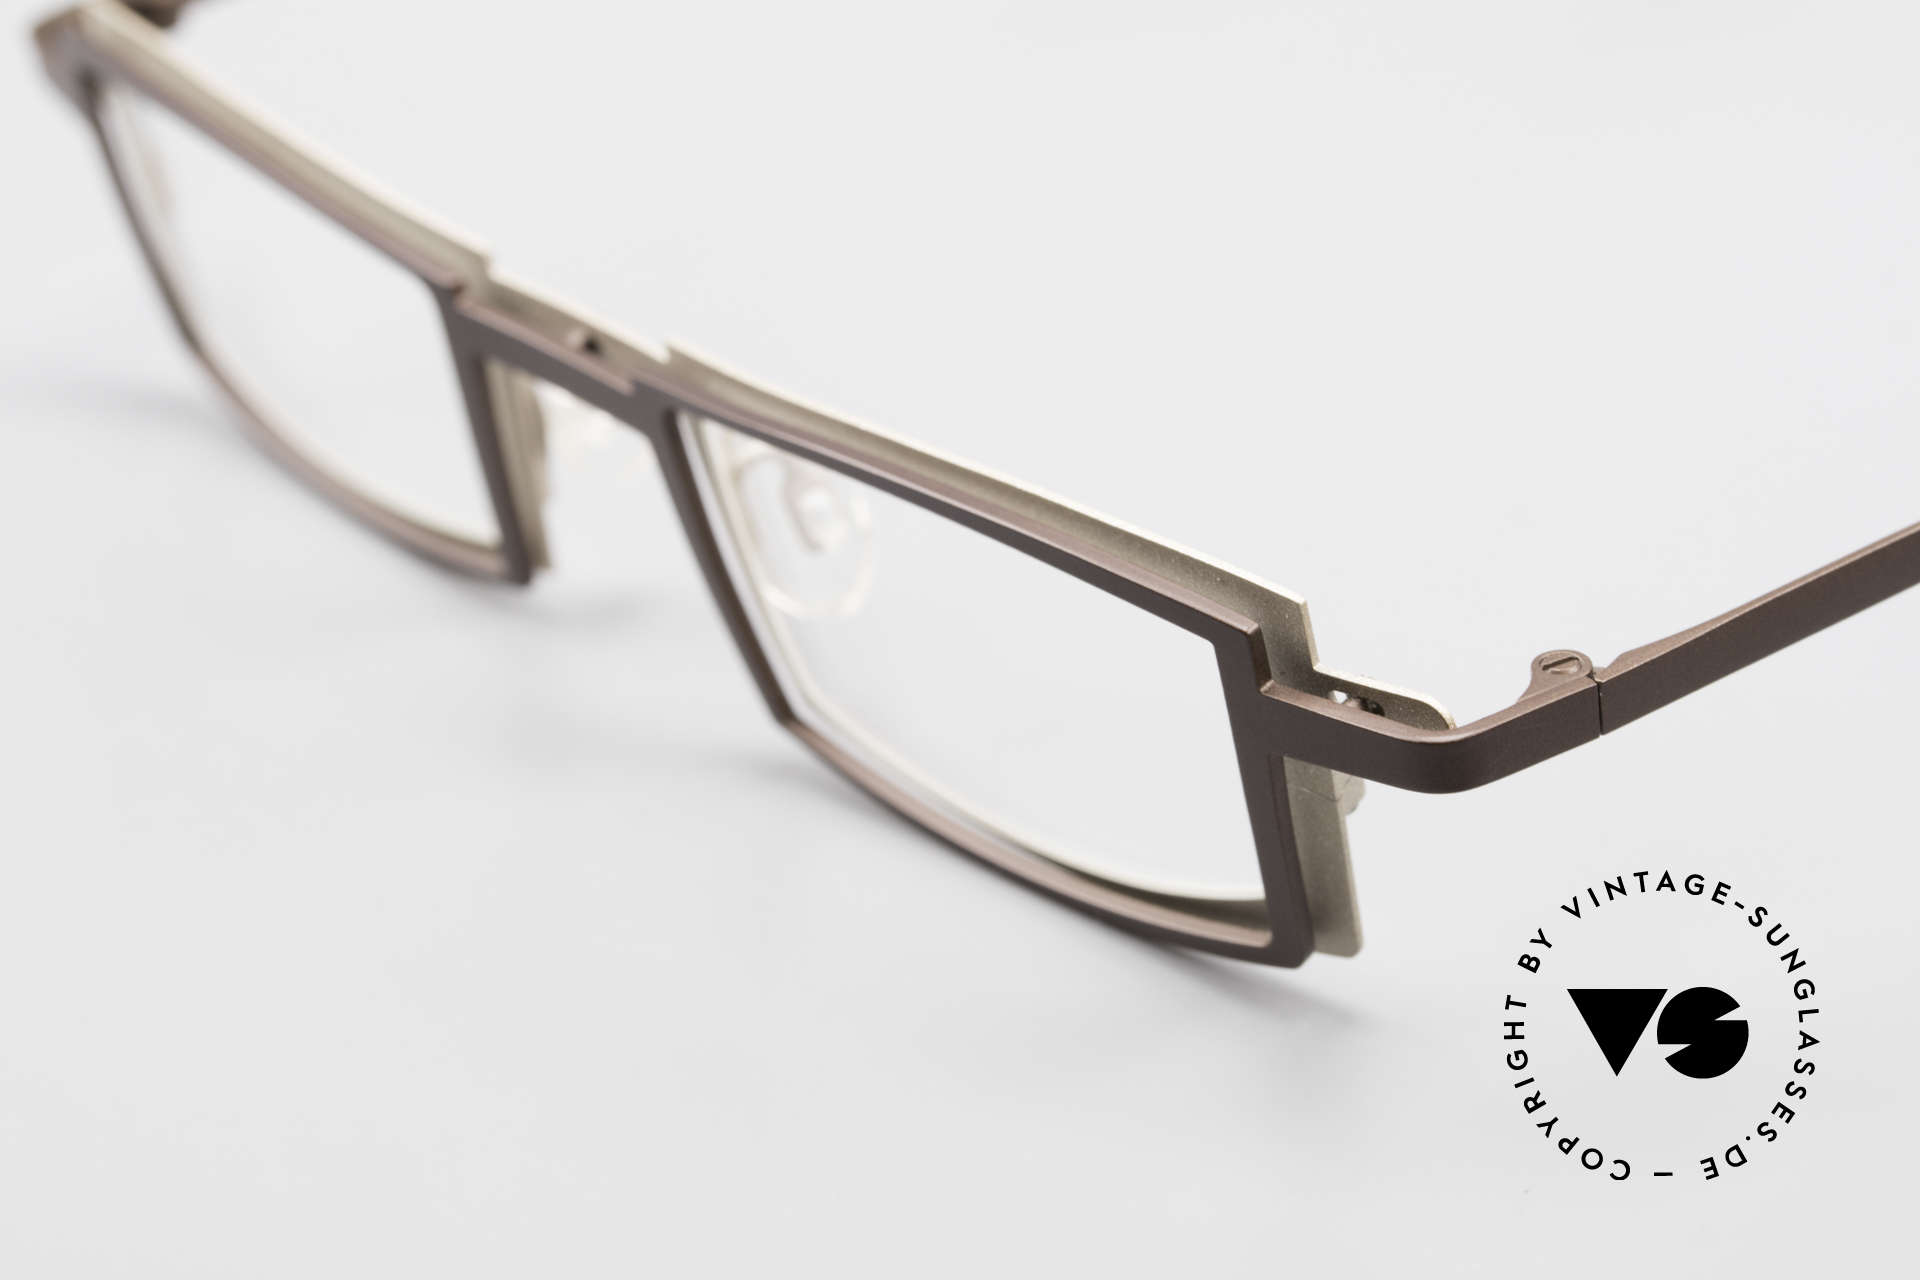 Theo Belgium Kwartet Designer Eyeglasses Vintage, very interesting color concept in dark brown & crème, Made for Men and Women